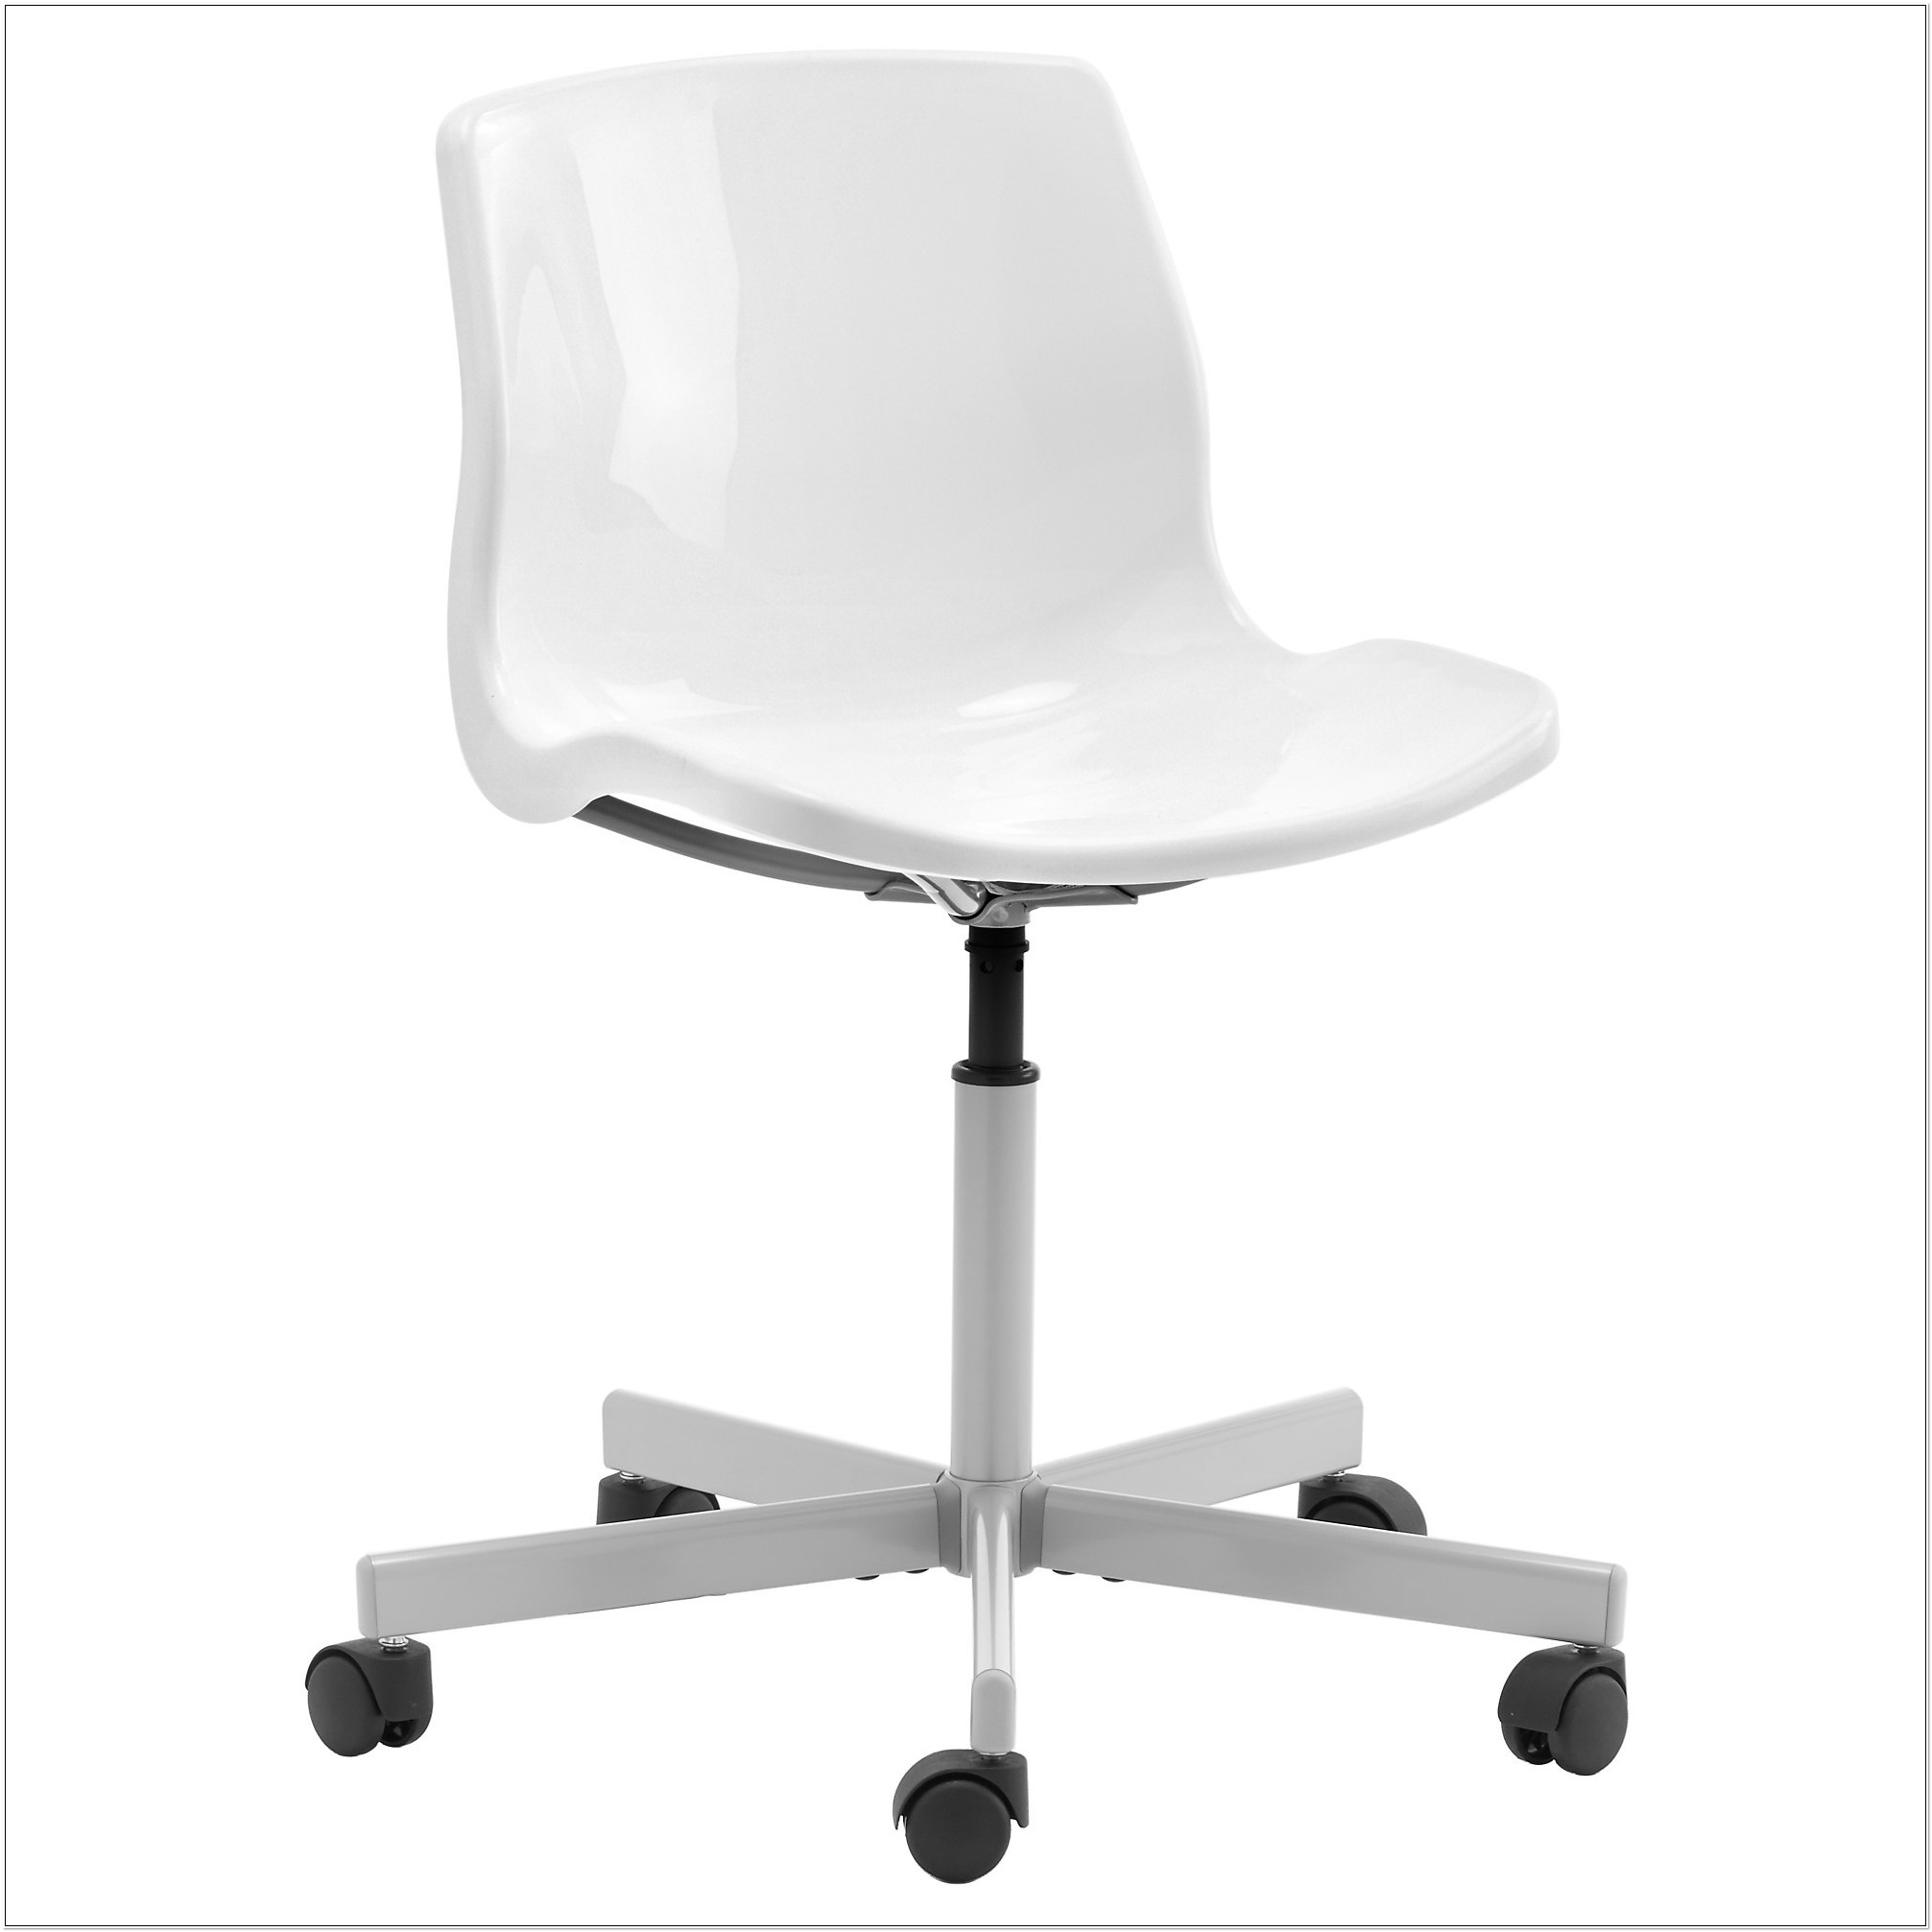 White Swivel Office Chair Ikea